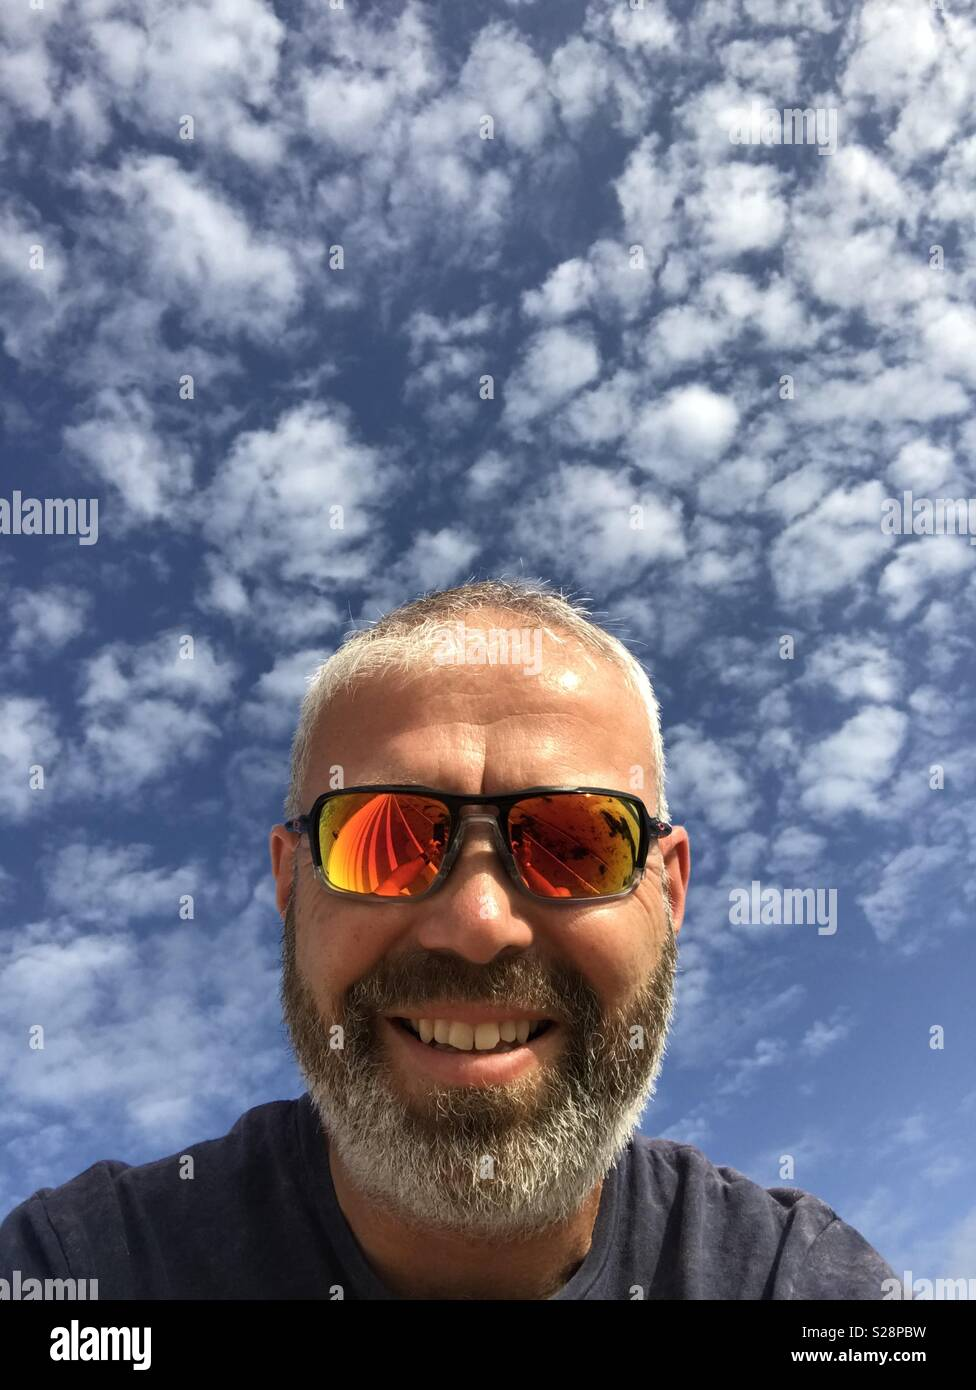 Smiling Bearded Man with Red Mirrored Shades on - Stock Image